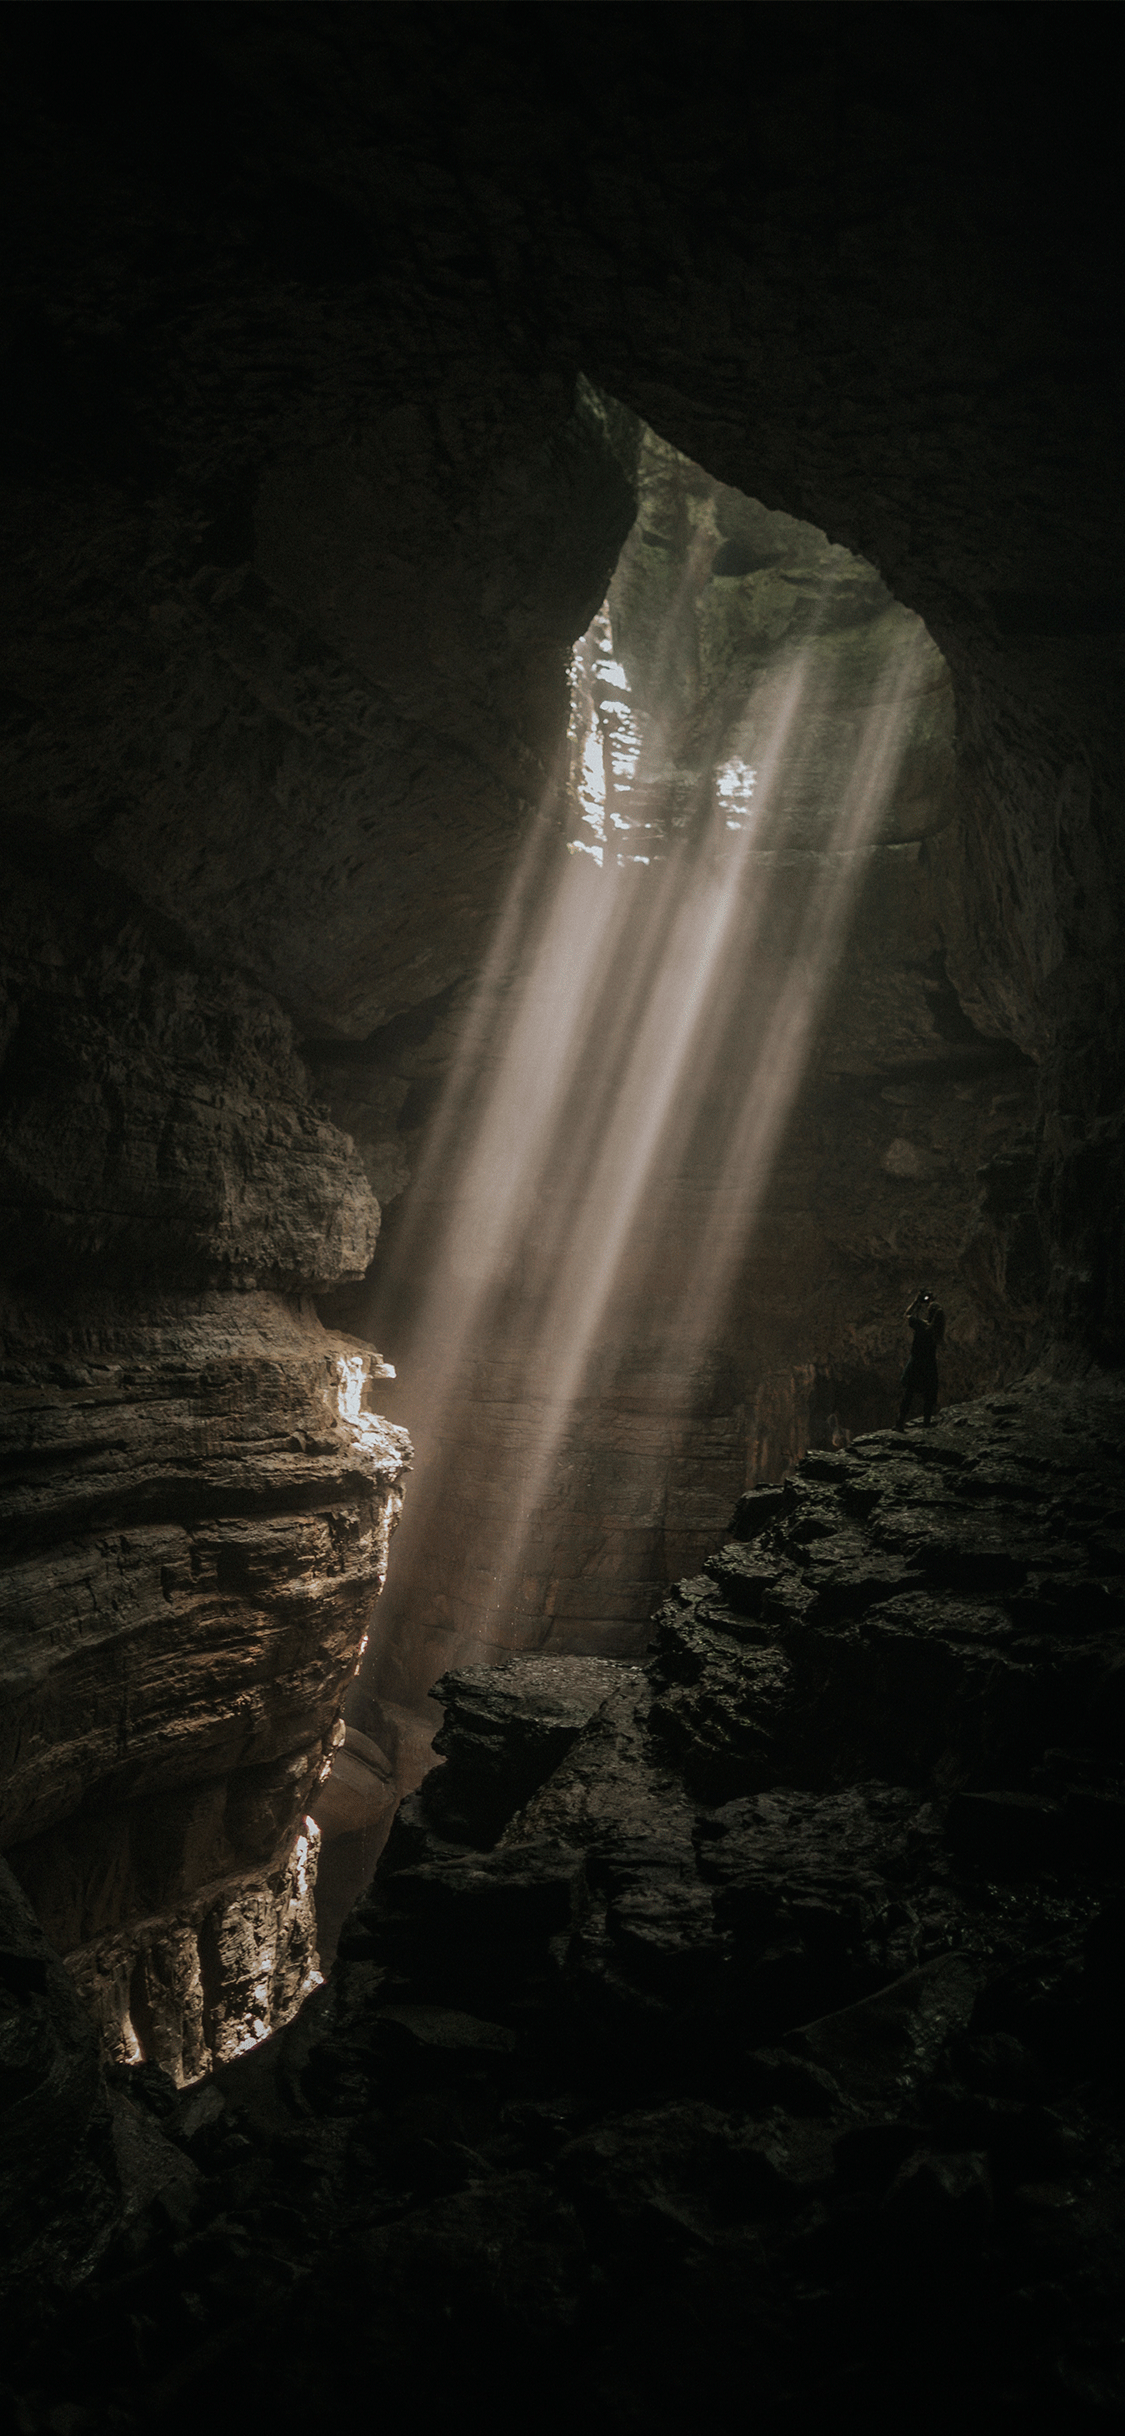 iPhone wallpaper cave light Cave